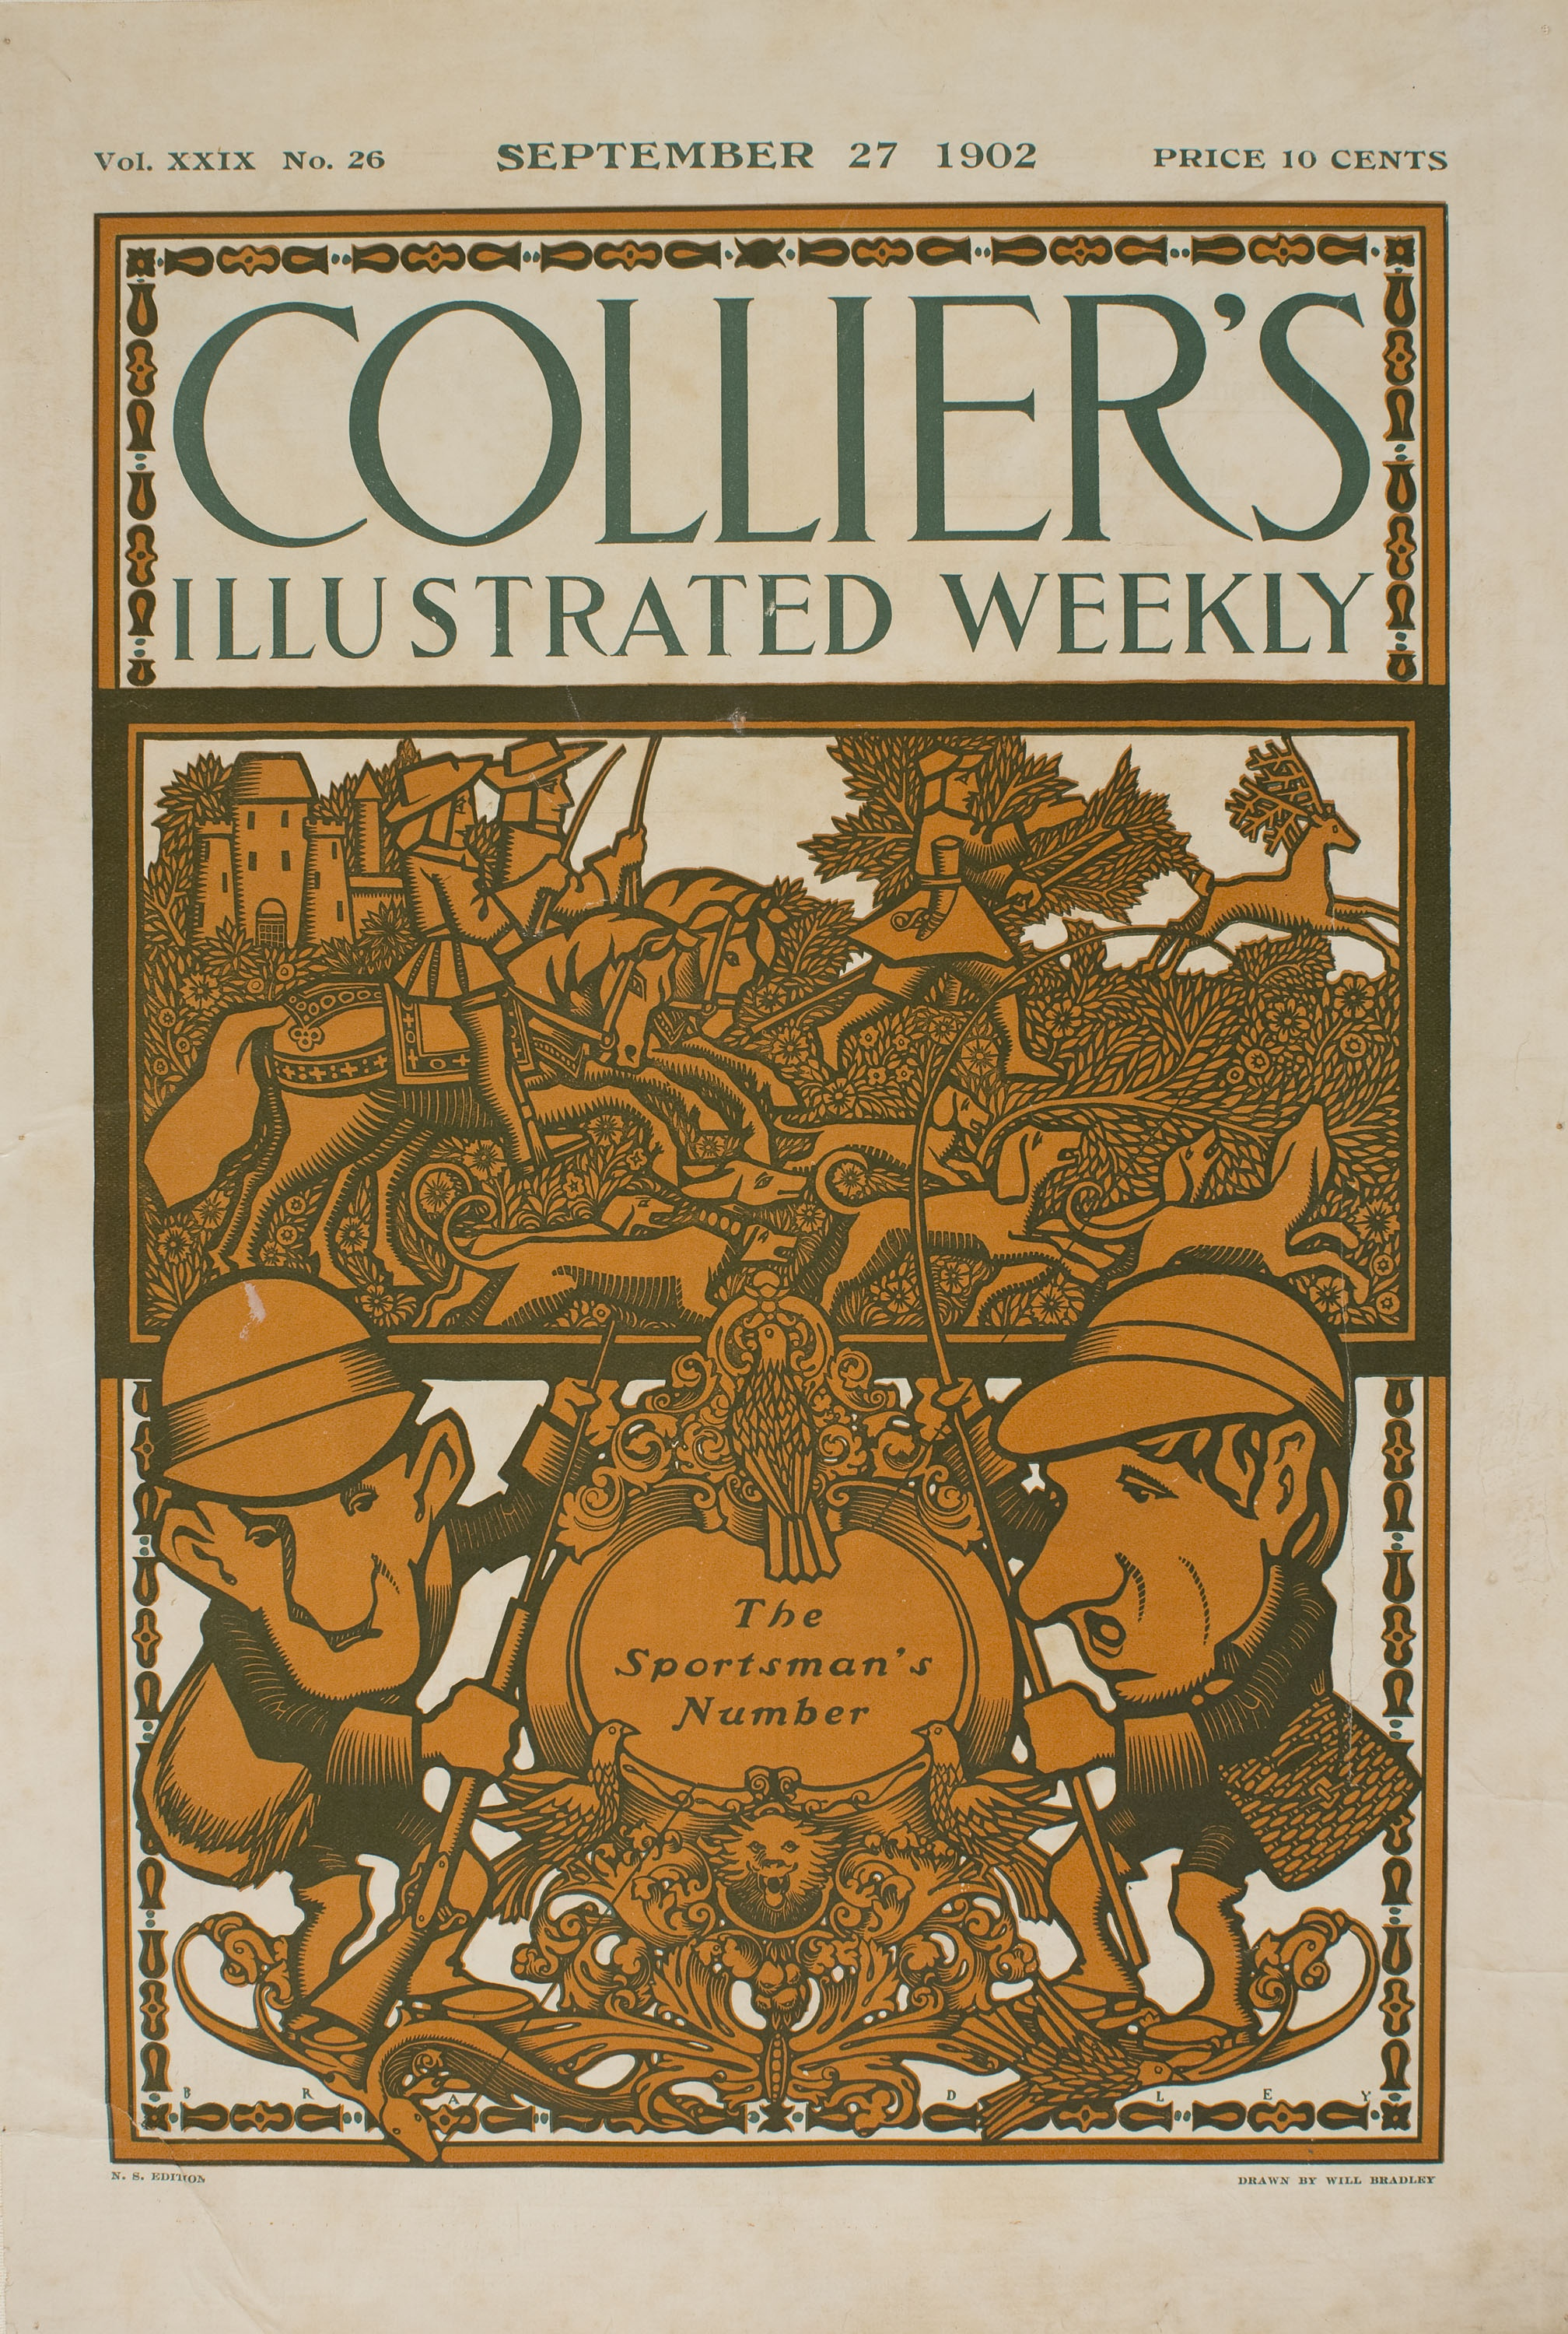 William Henry Bradley - Collier's Illustrated Weekly - 1902